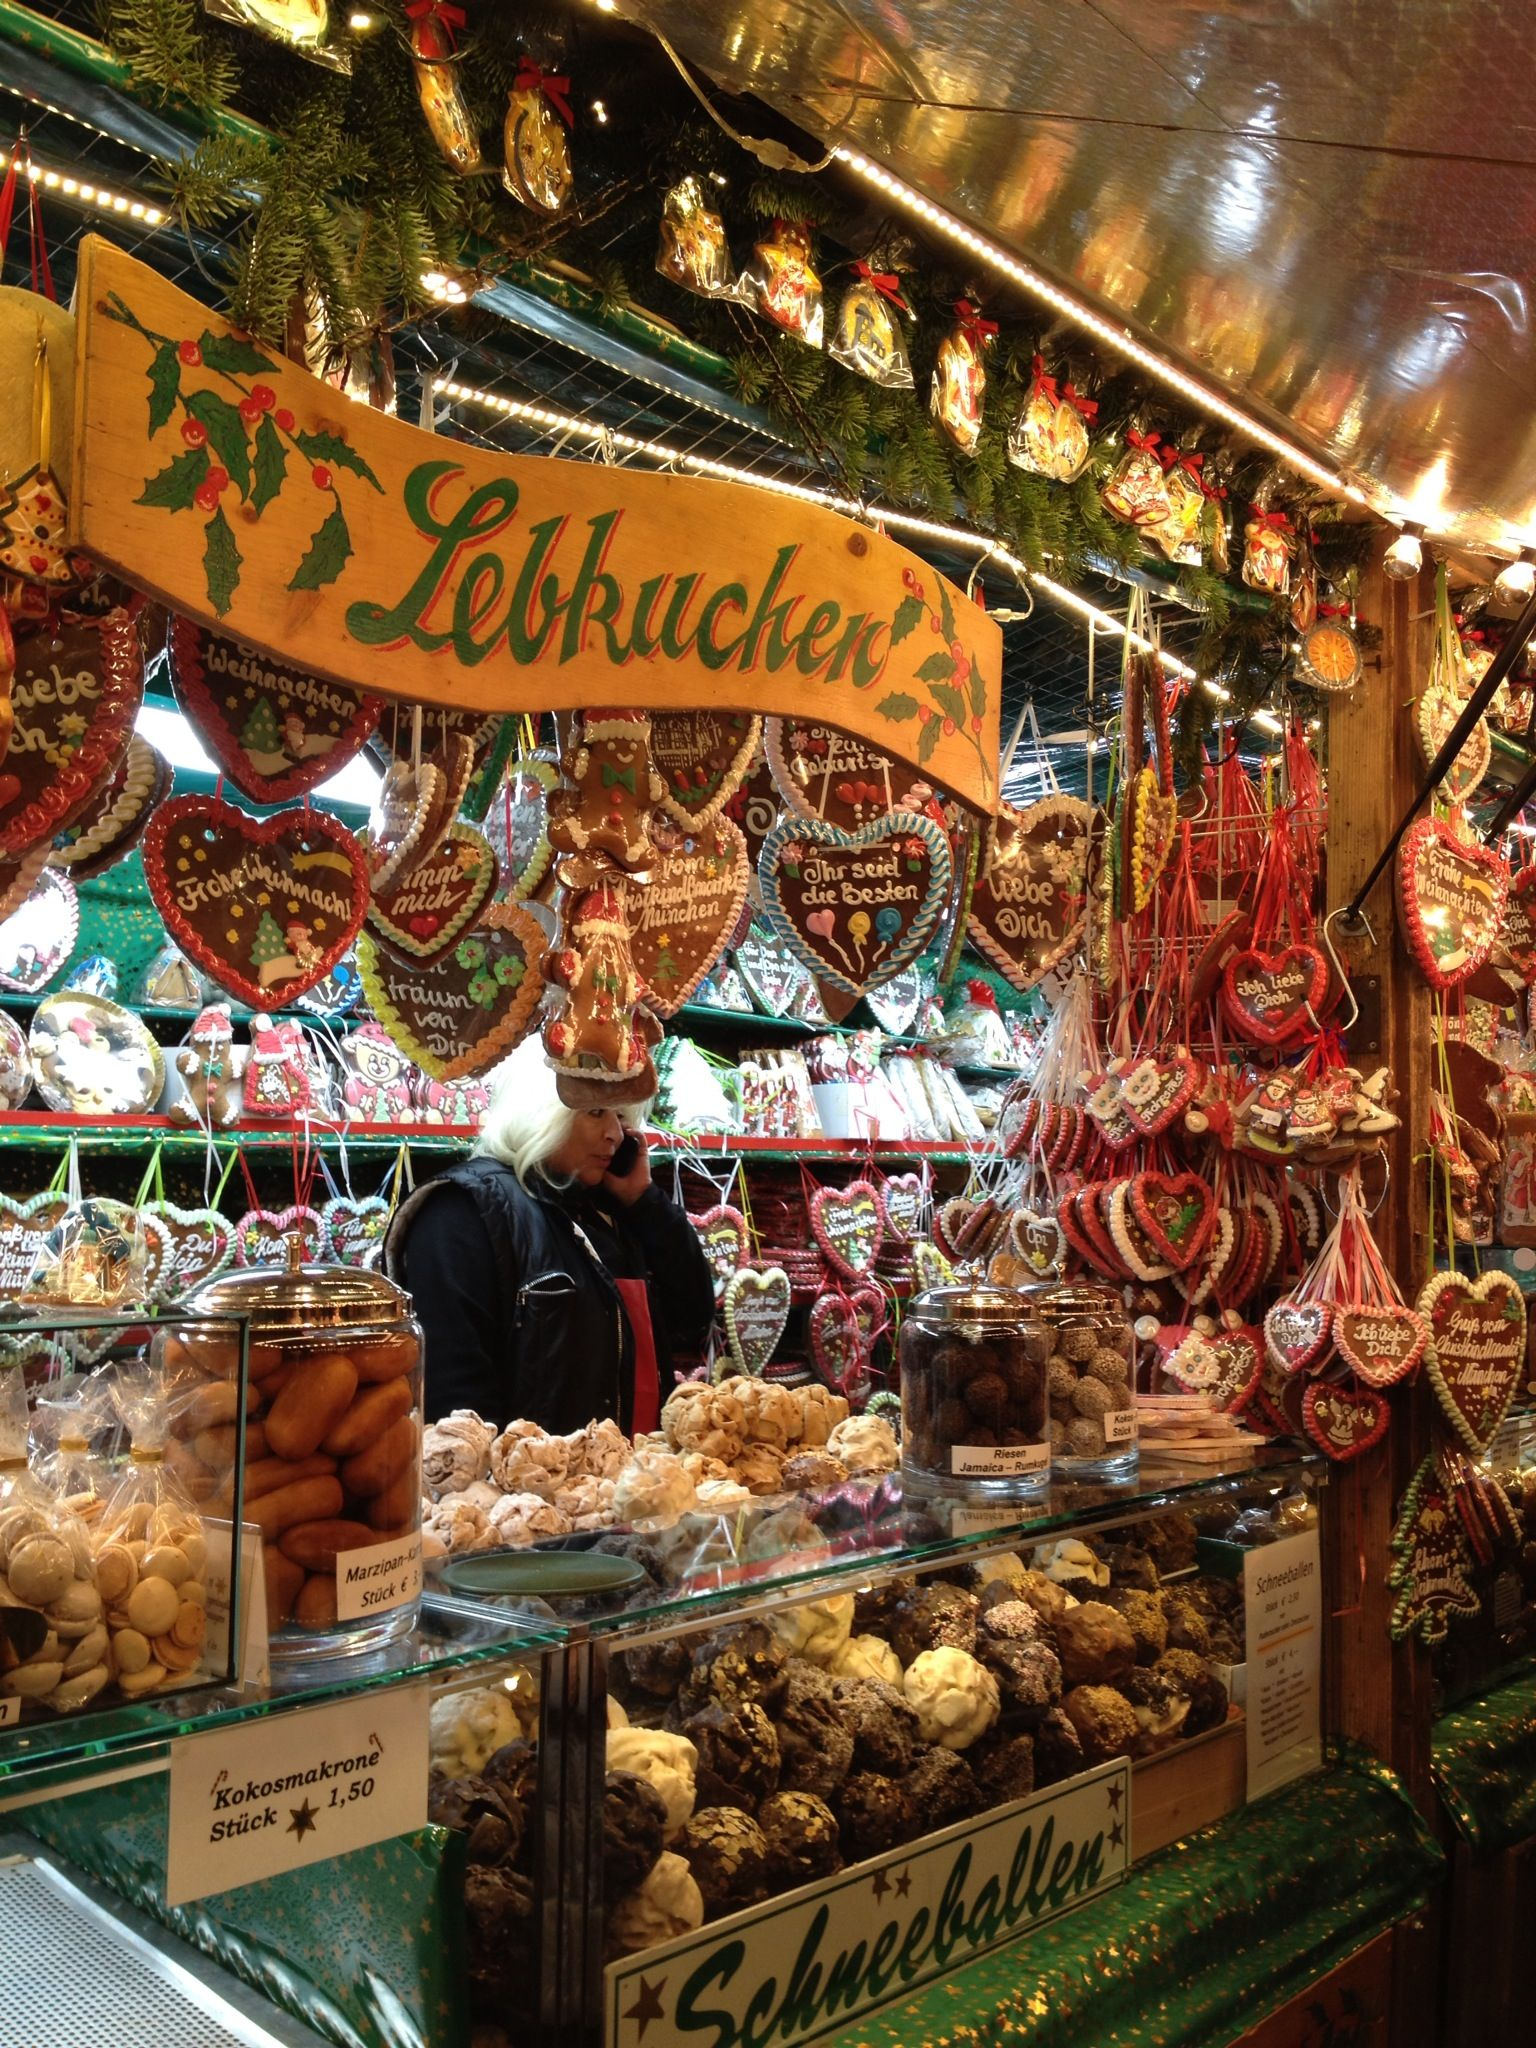 munich christmas market christmas village in baltimore is modeled after traditional german christmas markets the goods presented in timber booths include